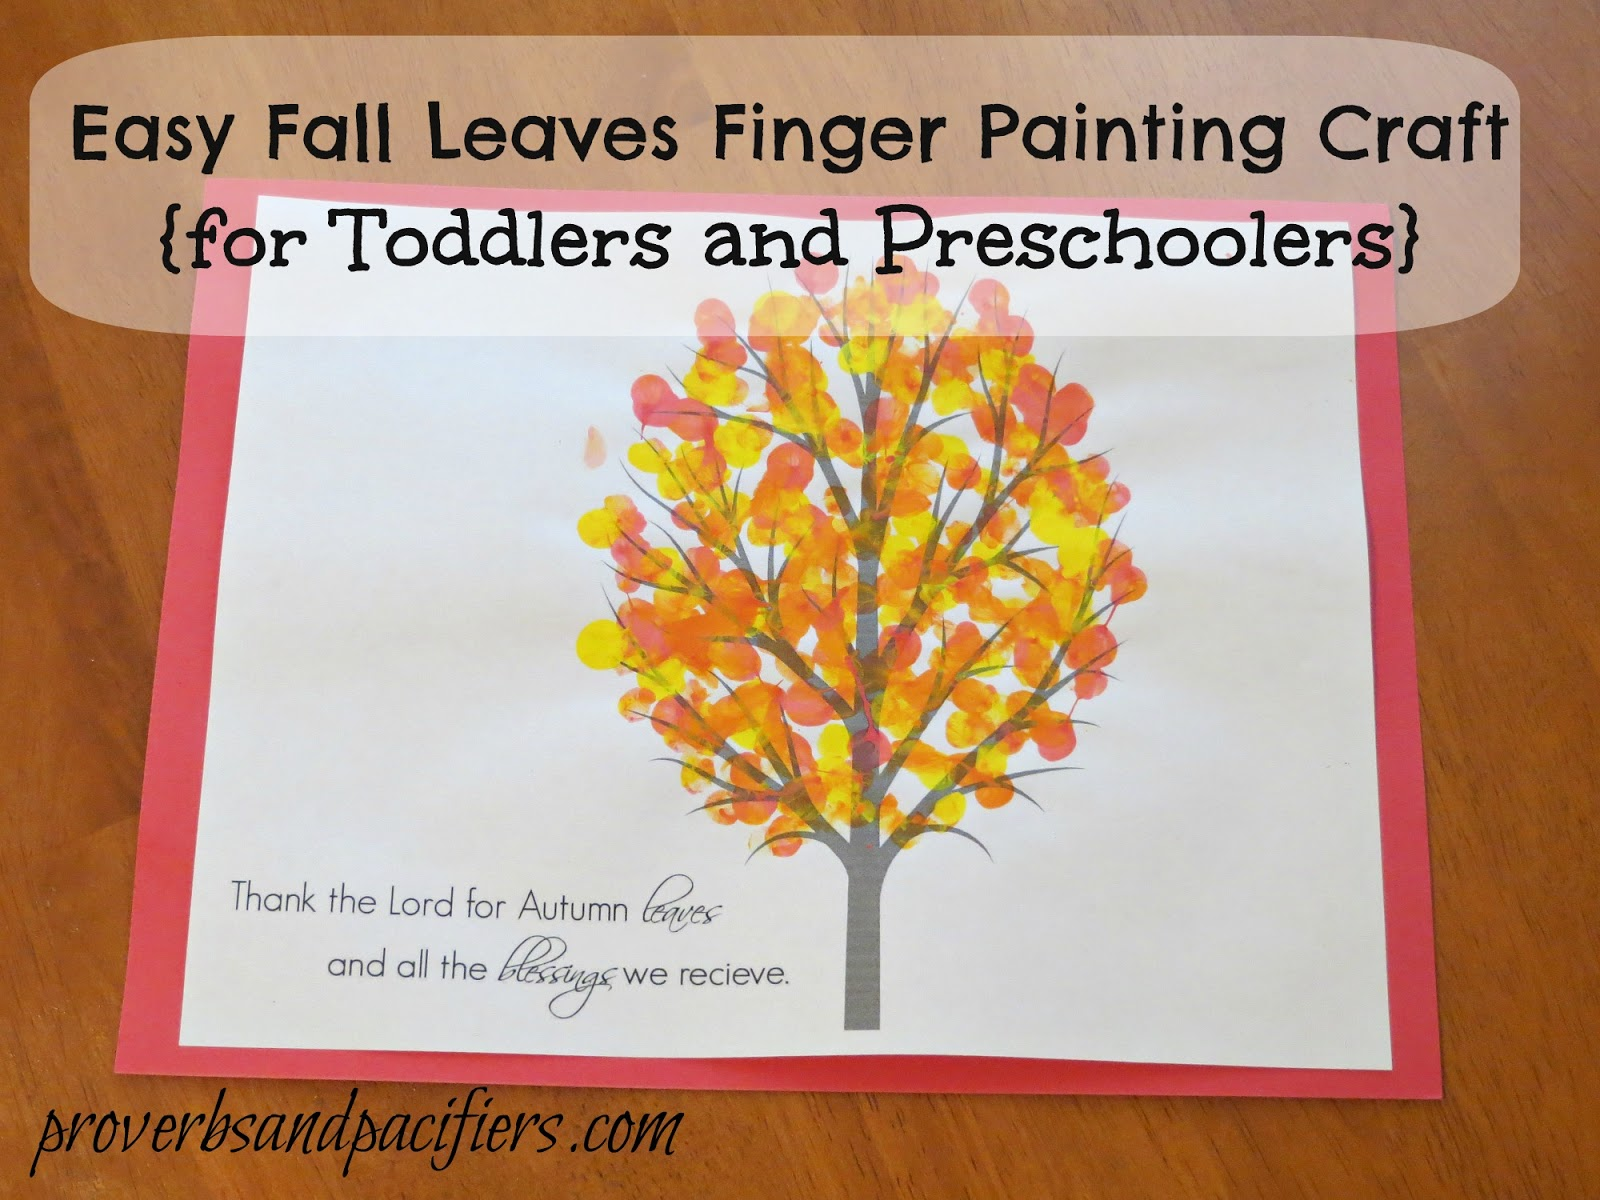 Proverbs And Pacifiers Easy Fall Leaves Finger Painting Craft Free Printable